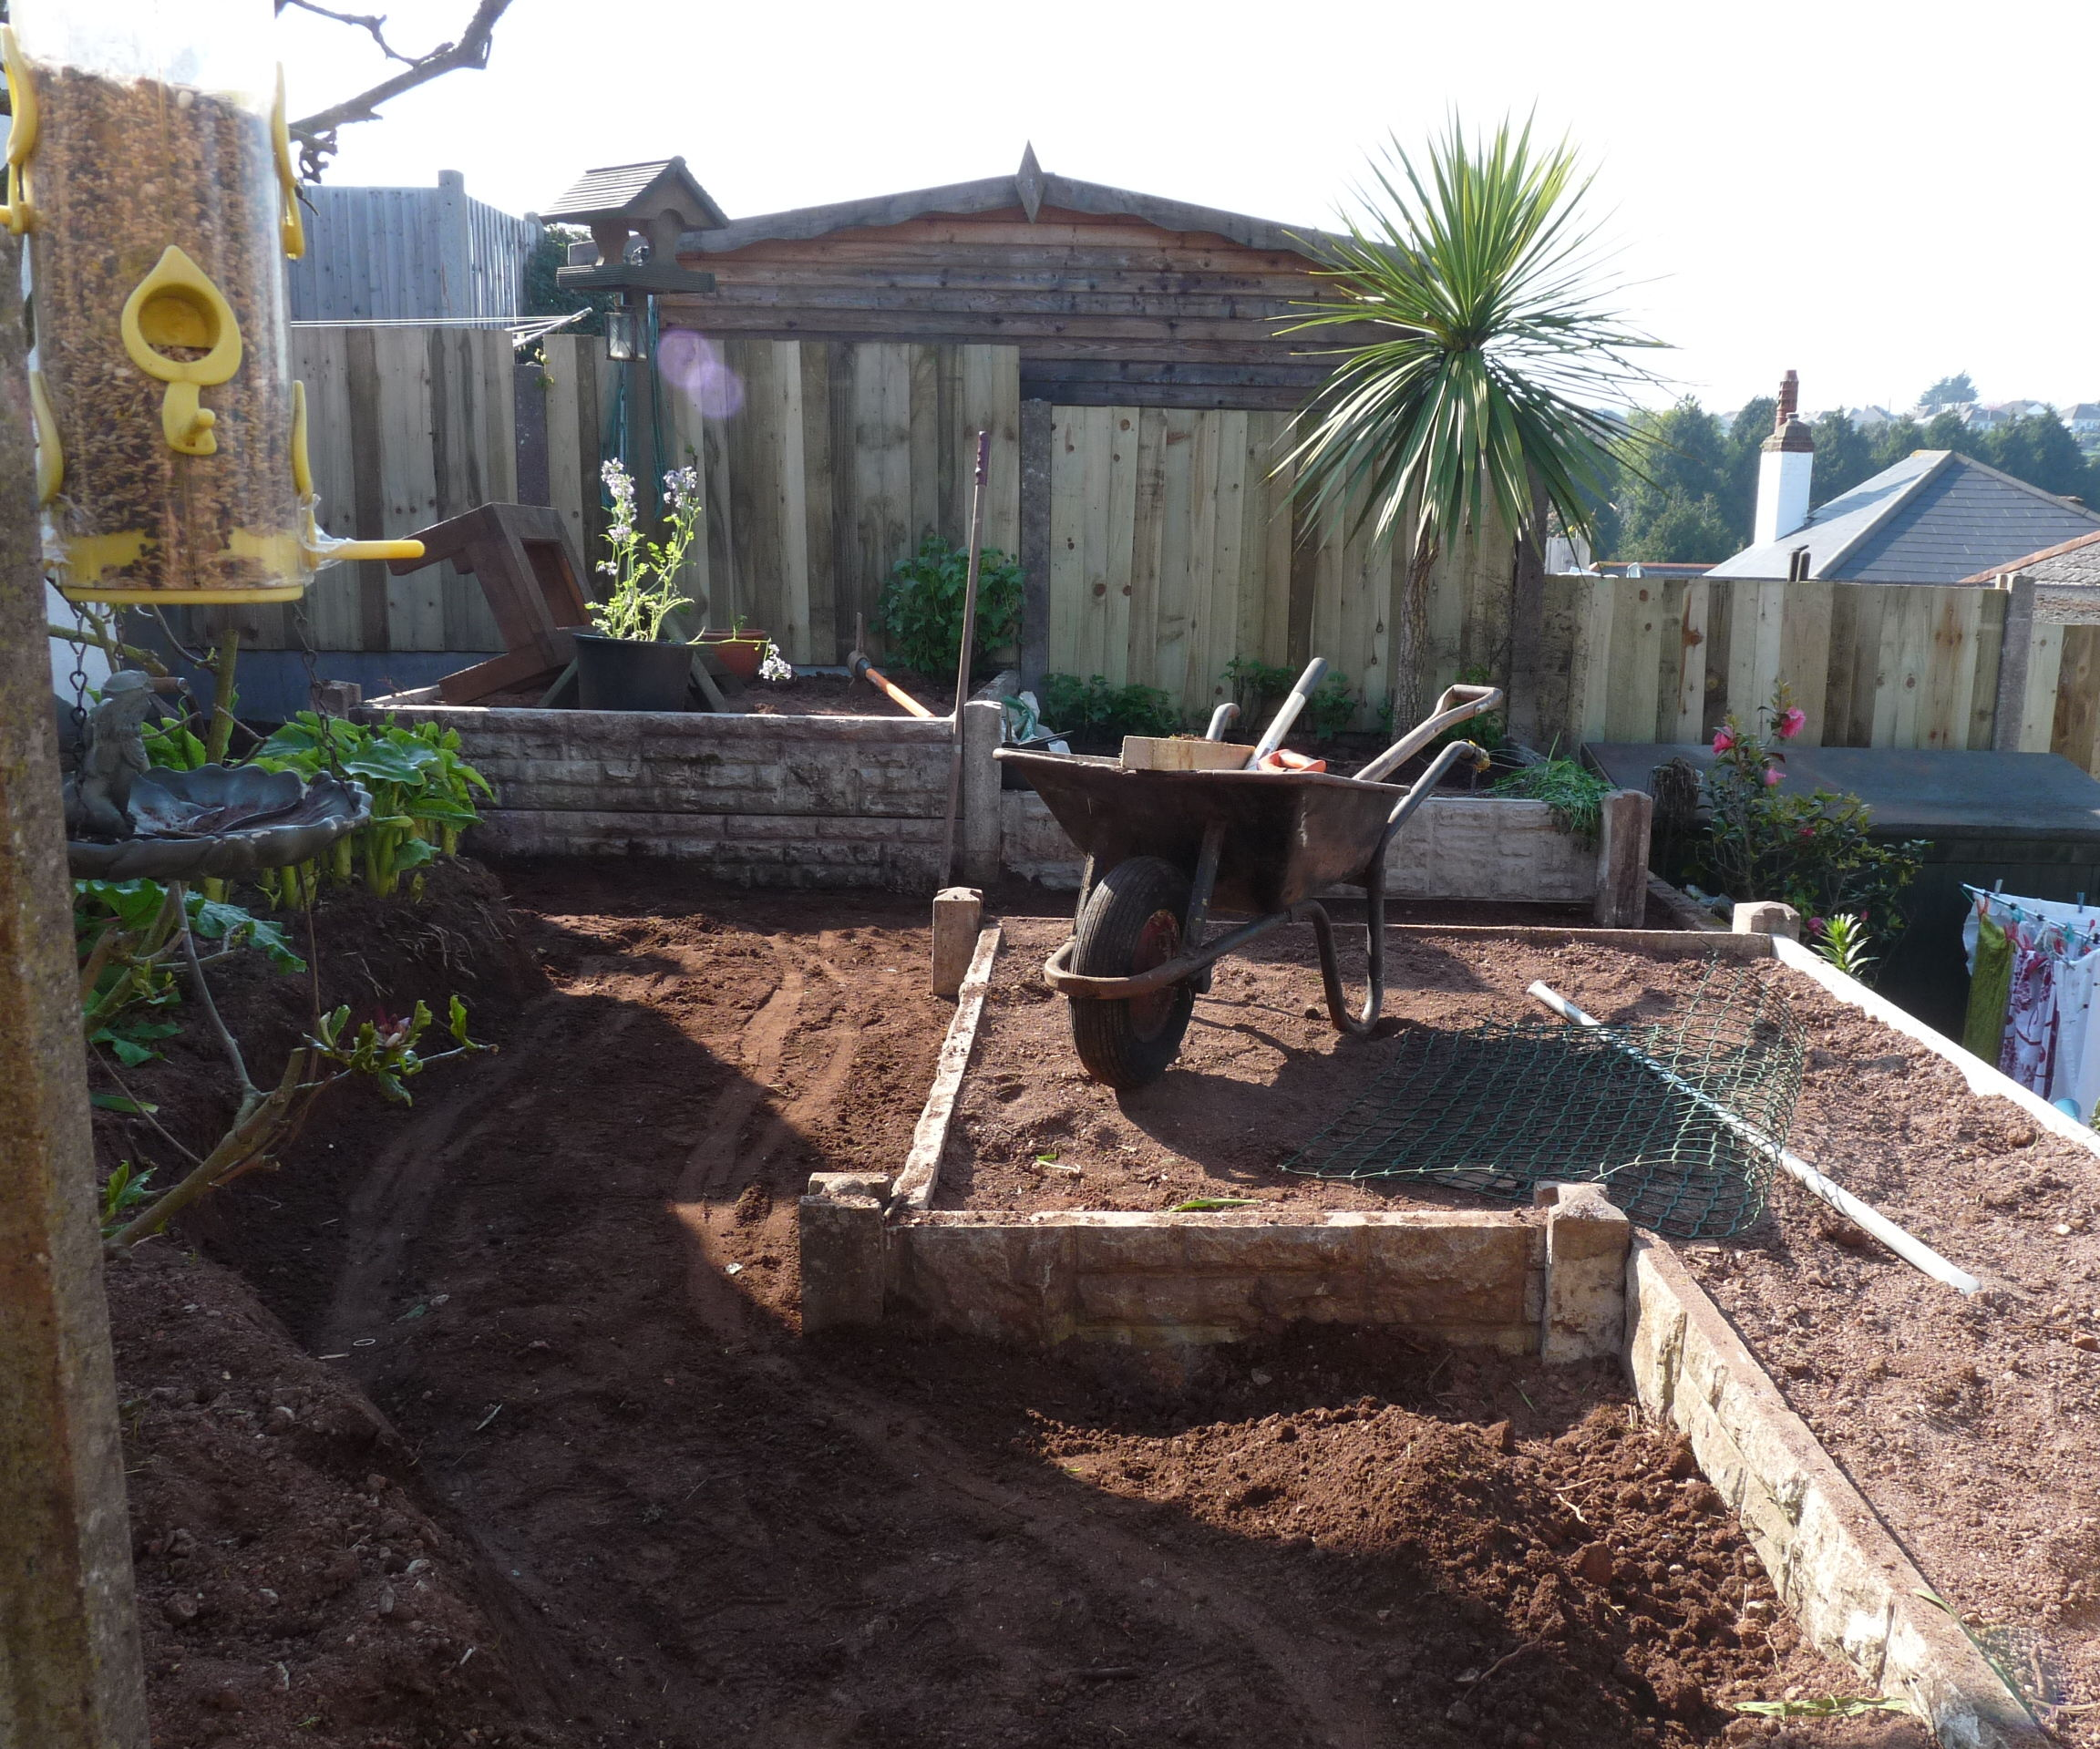 Affordable Raised Bed Garden Concrete Built To Last Producing Delicious Organic Vegetables